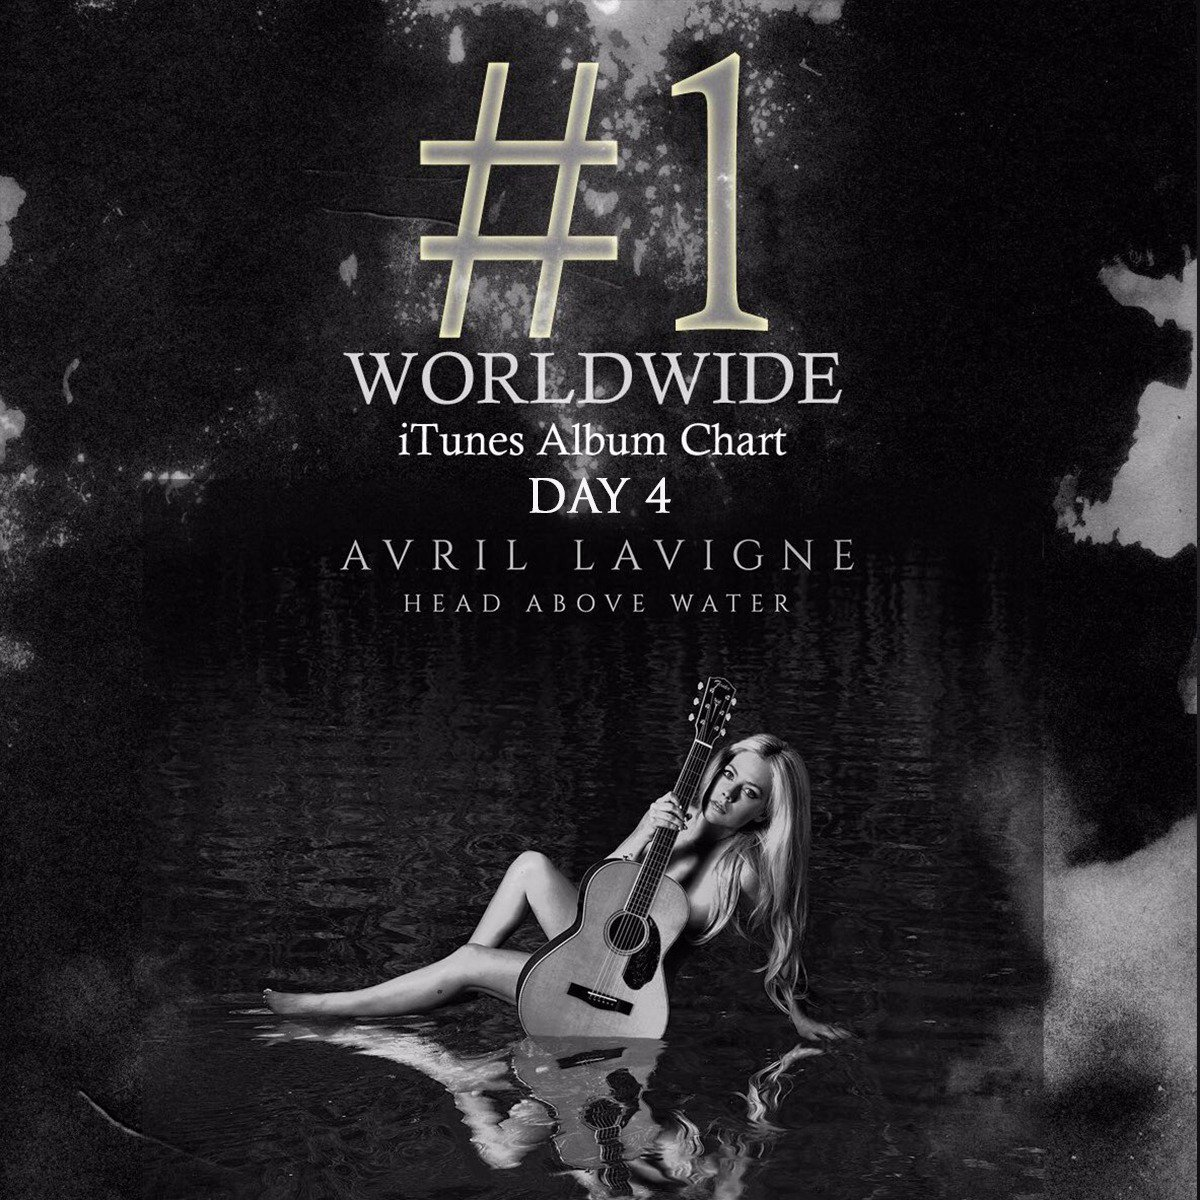 Day 4 and still the top-selling album worldwide on iTunes. Thank you to the best fans in the world : ) https://t.co/xNIW4bFOhn